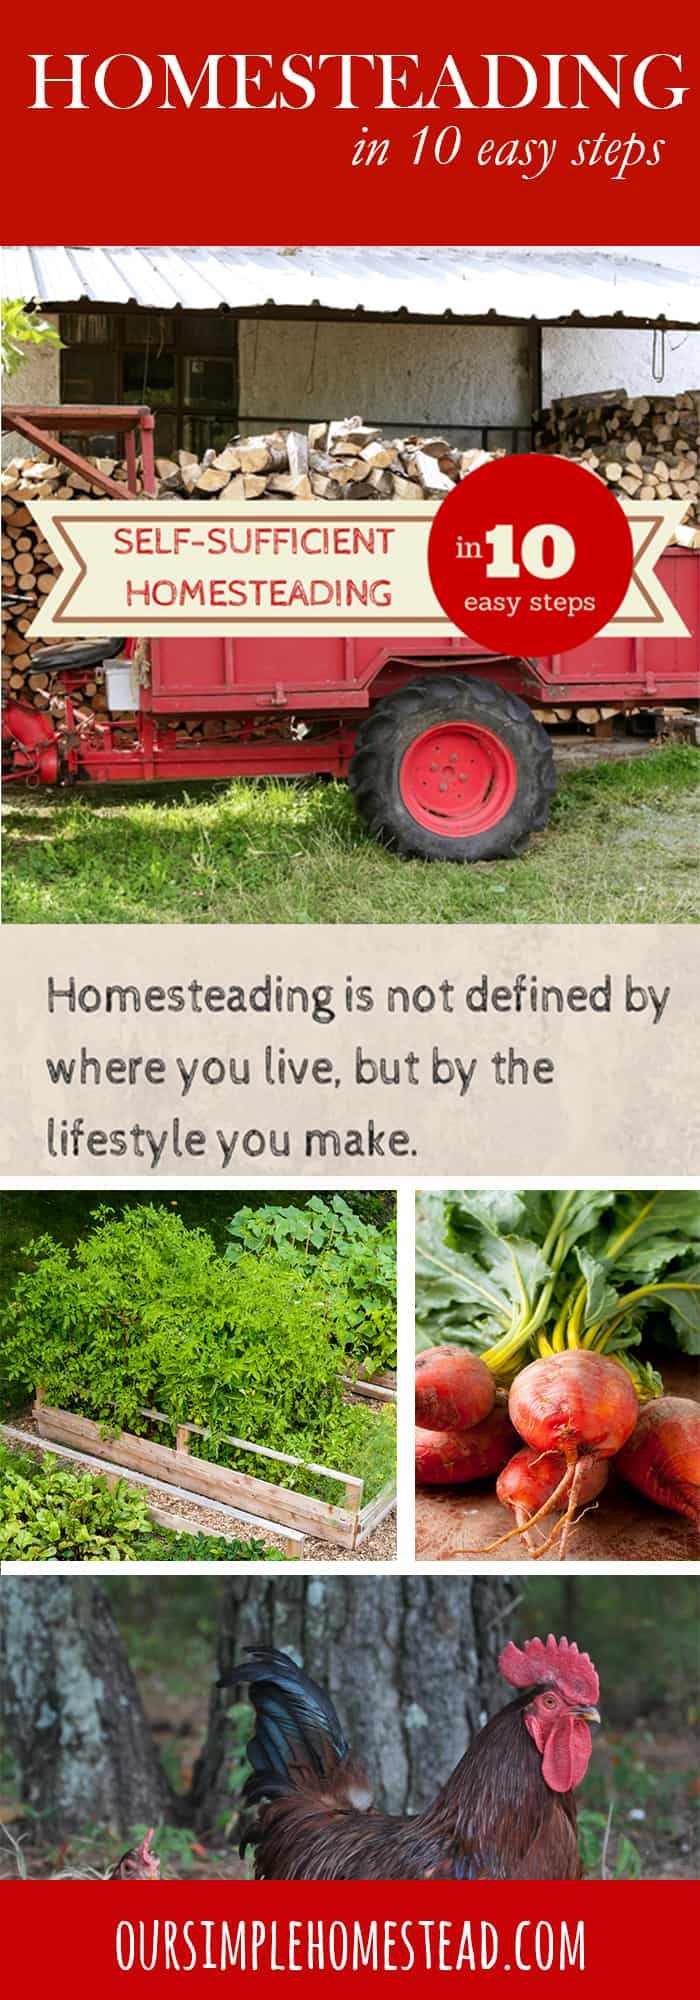 self sufficient living on a homestead in 10 easy steps